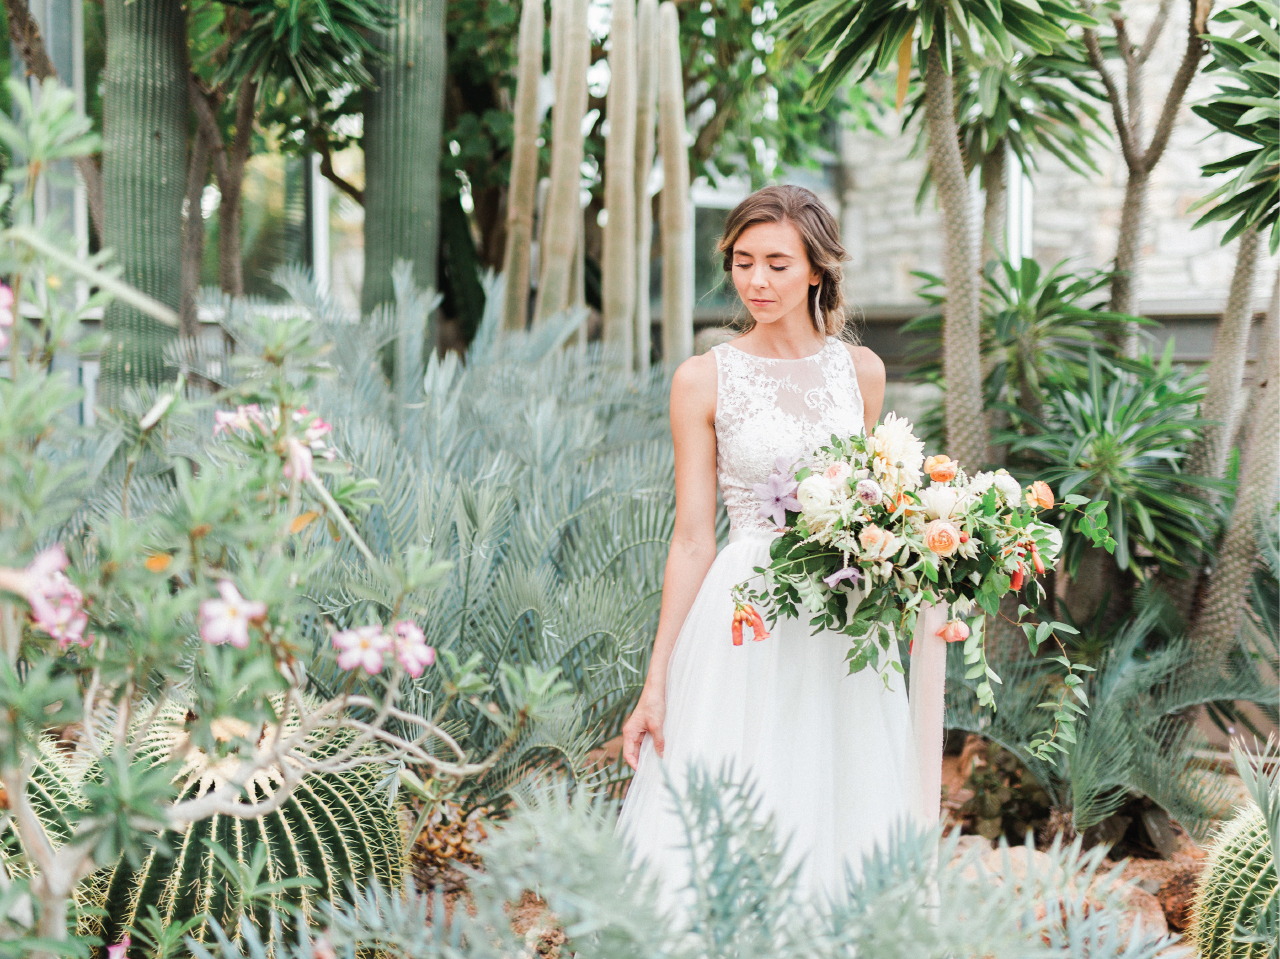 the-greenhouse-at-driftwood-wedding-inspiration.jpg